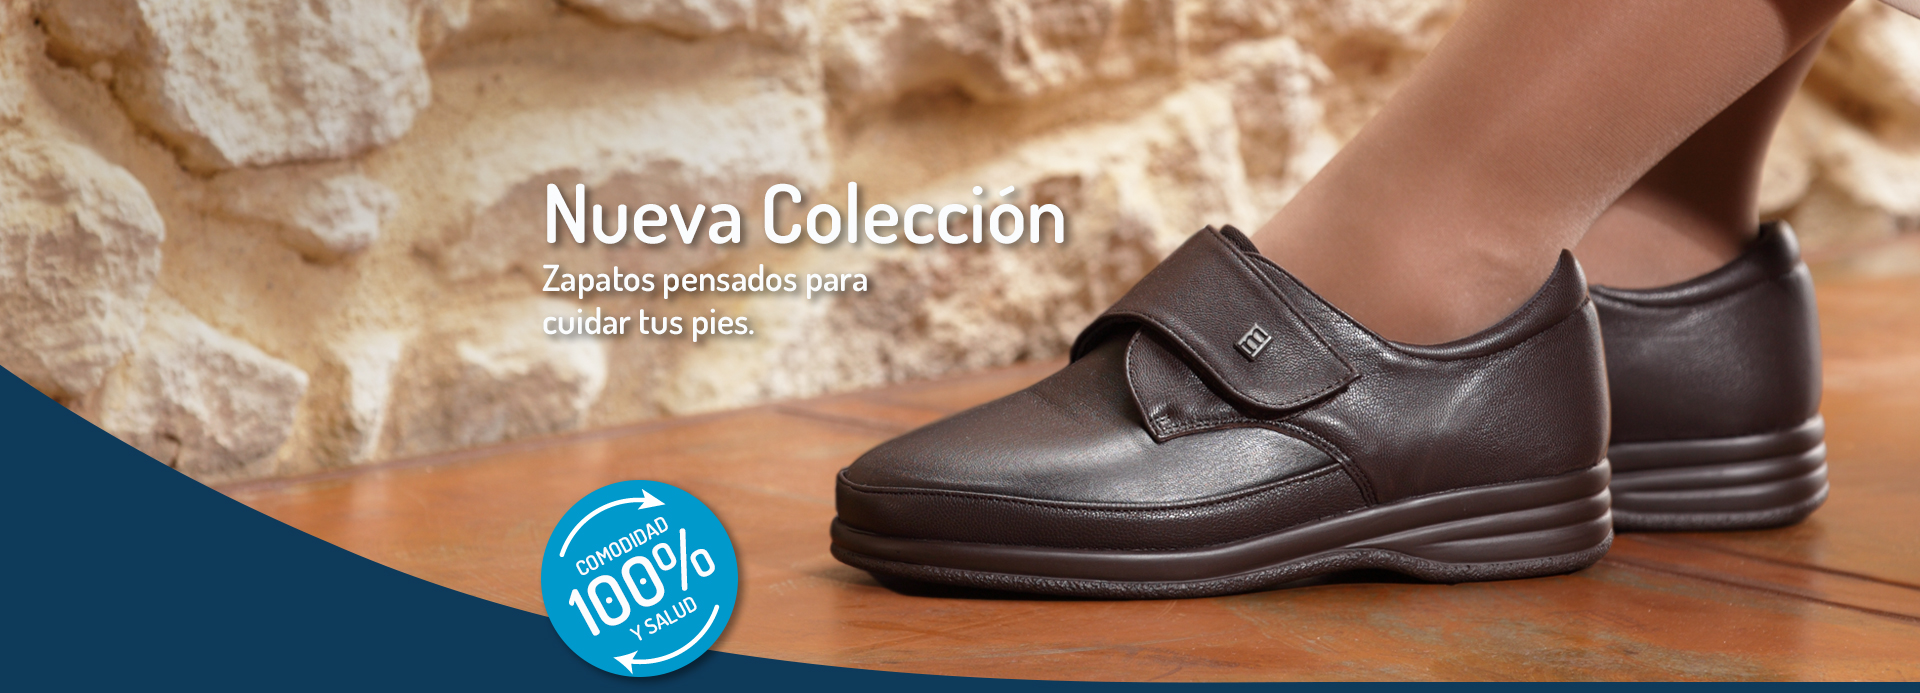 slider-mabel-shoes-1-texto